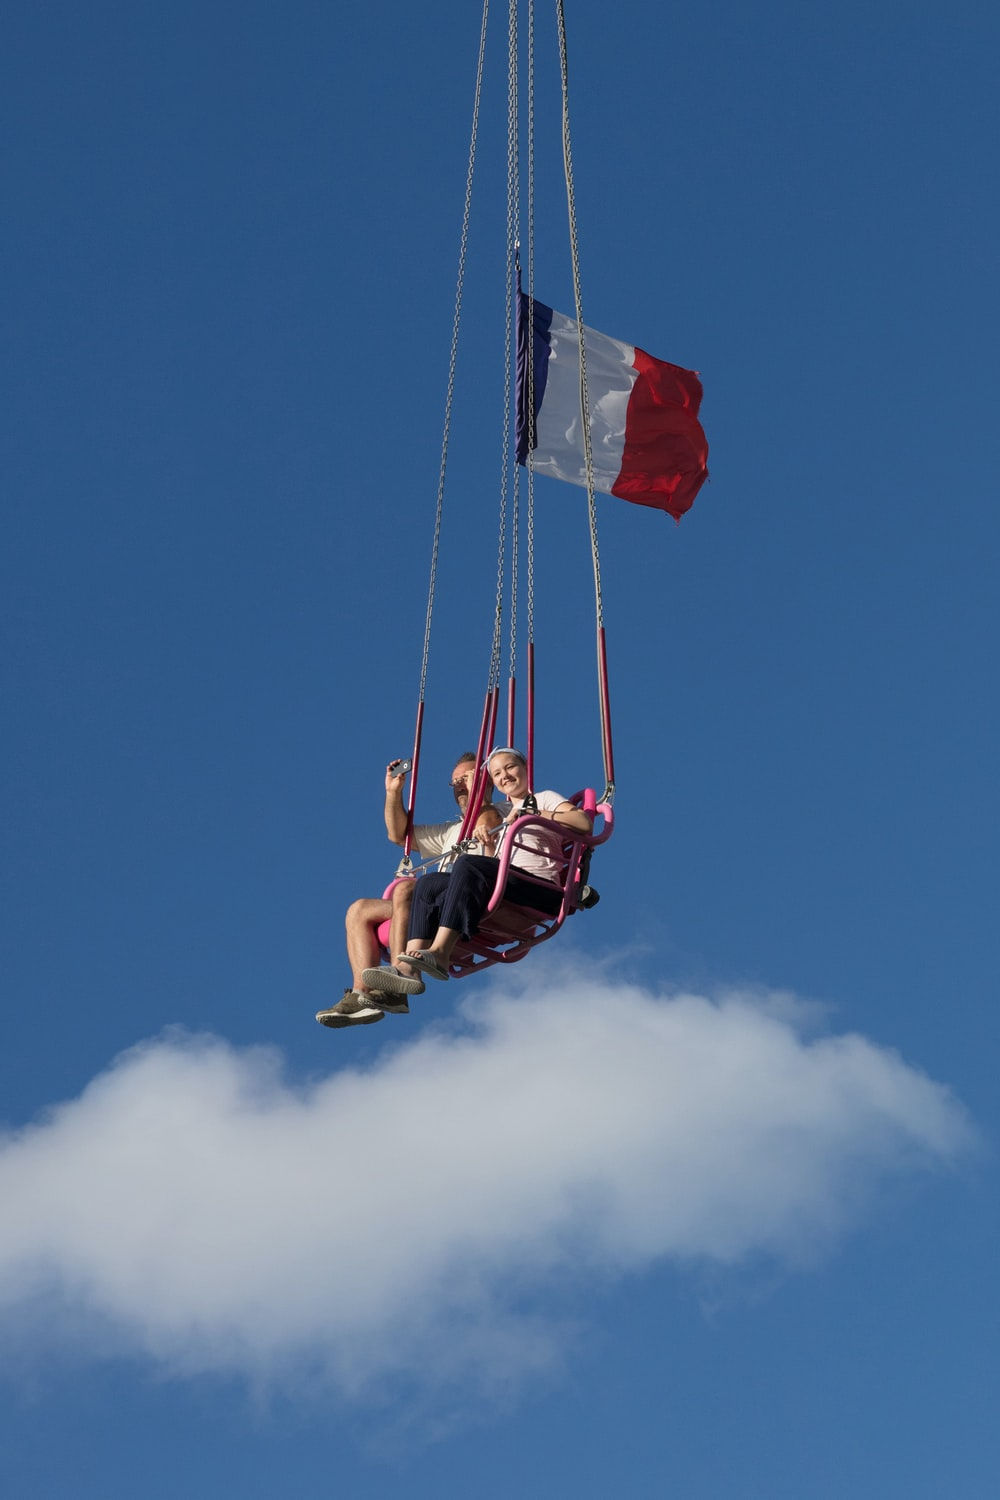 man in red shirt and black shorts riding on swing under blue sky during daytime